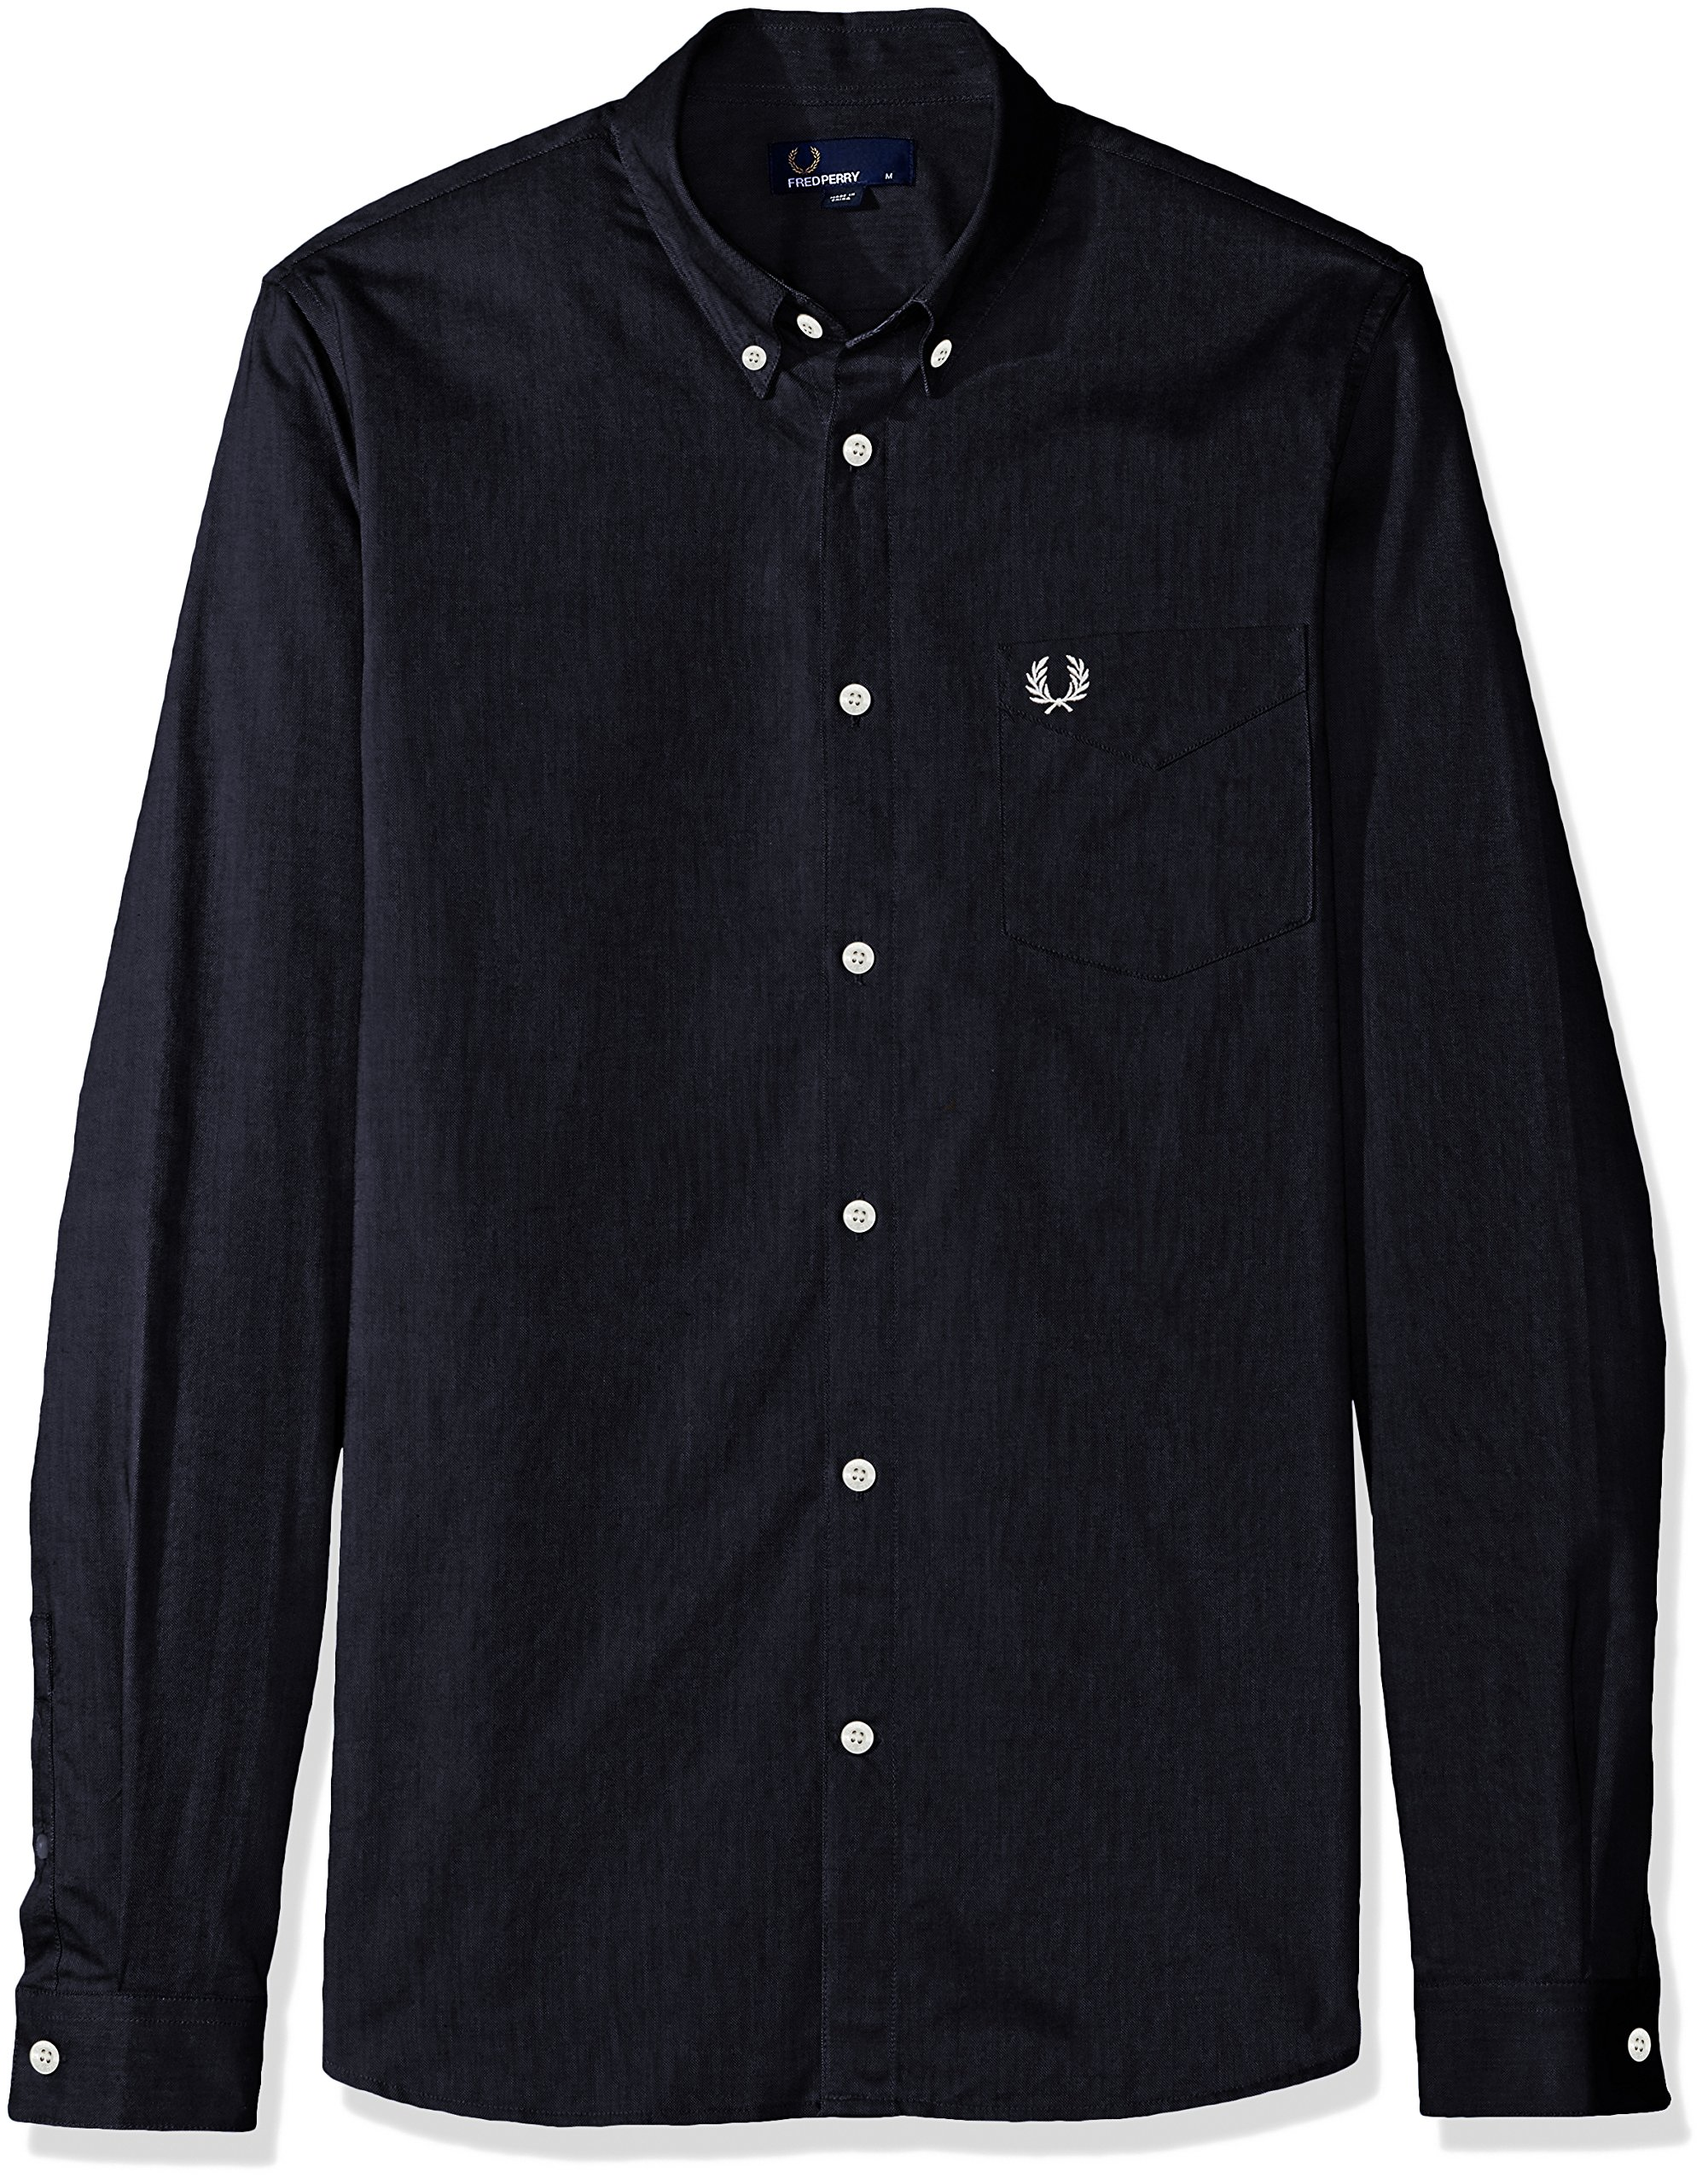 Fred Perry Men's Classic Oxford Long Sleeve Shirt, Black, Large by Fred Perry